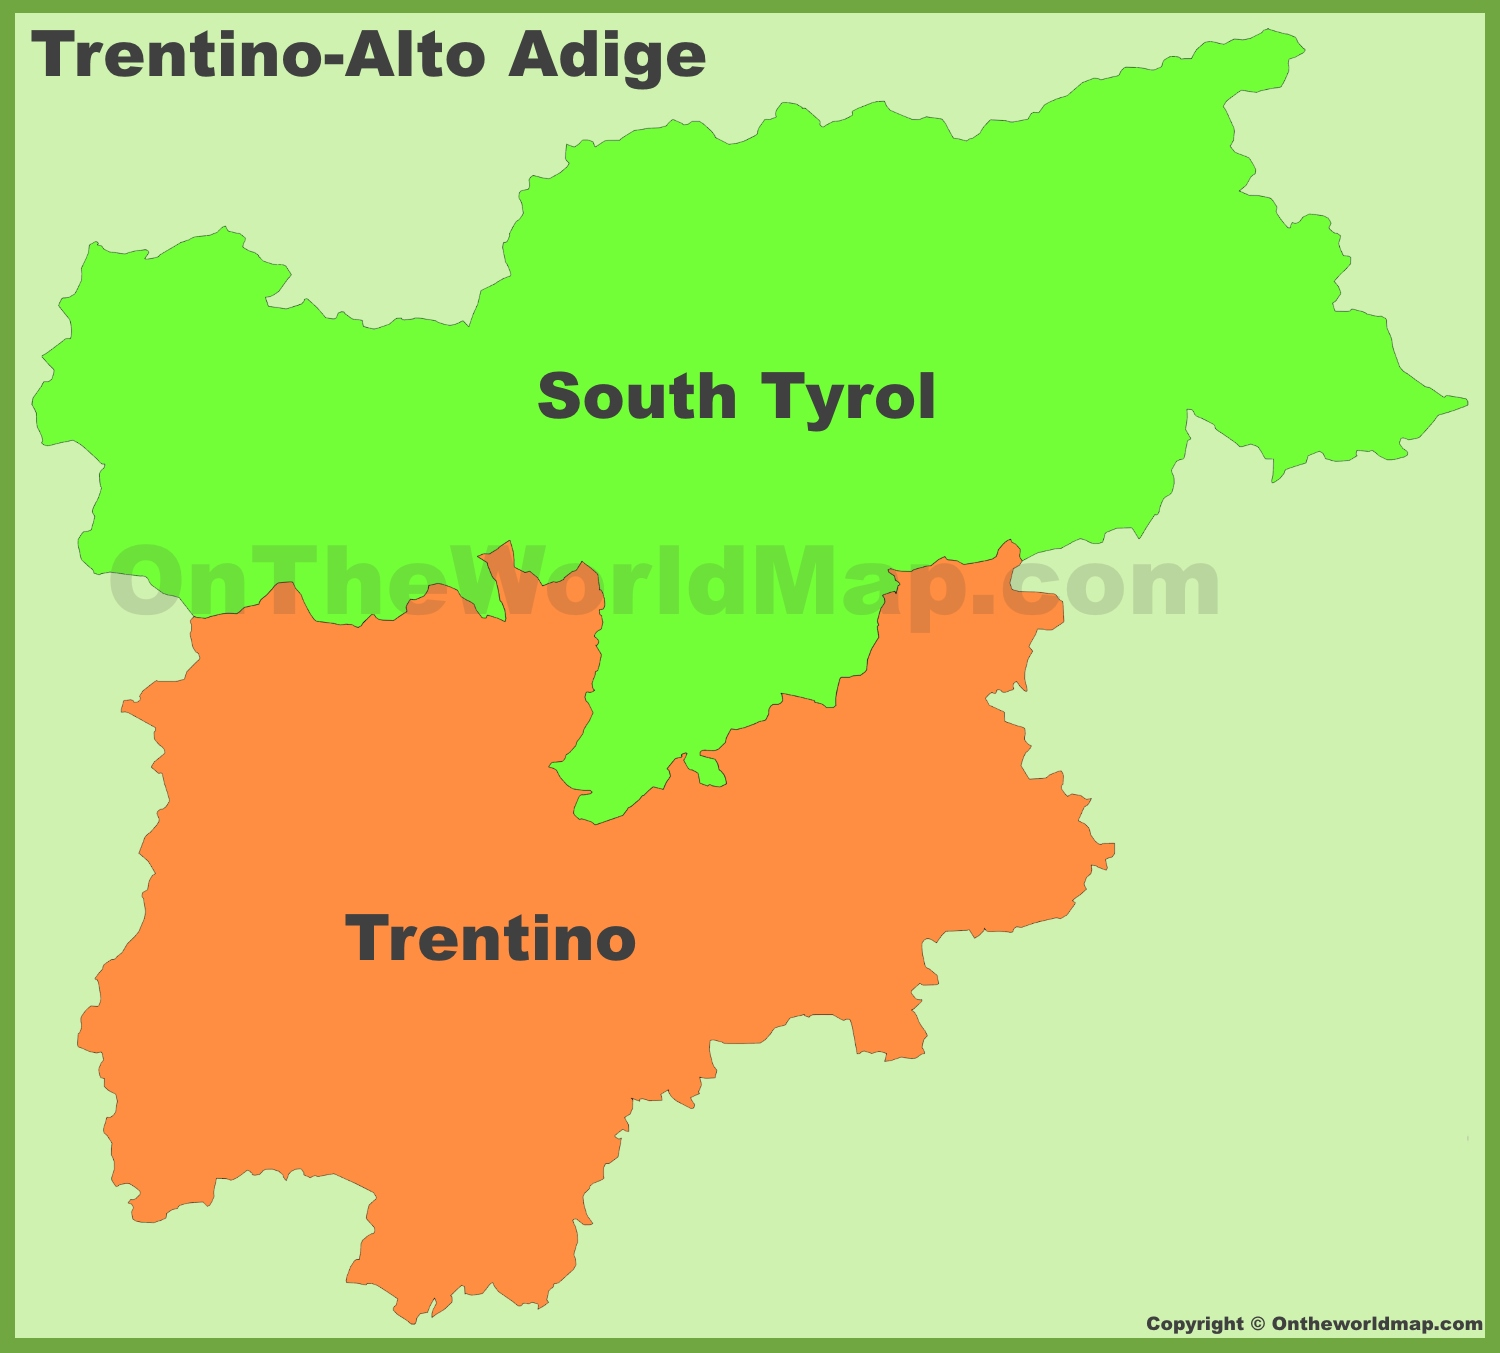 TrentinoAlto Adige provinces map